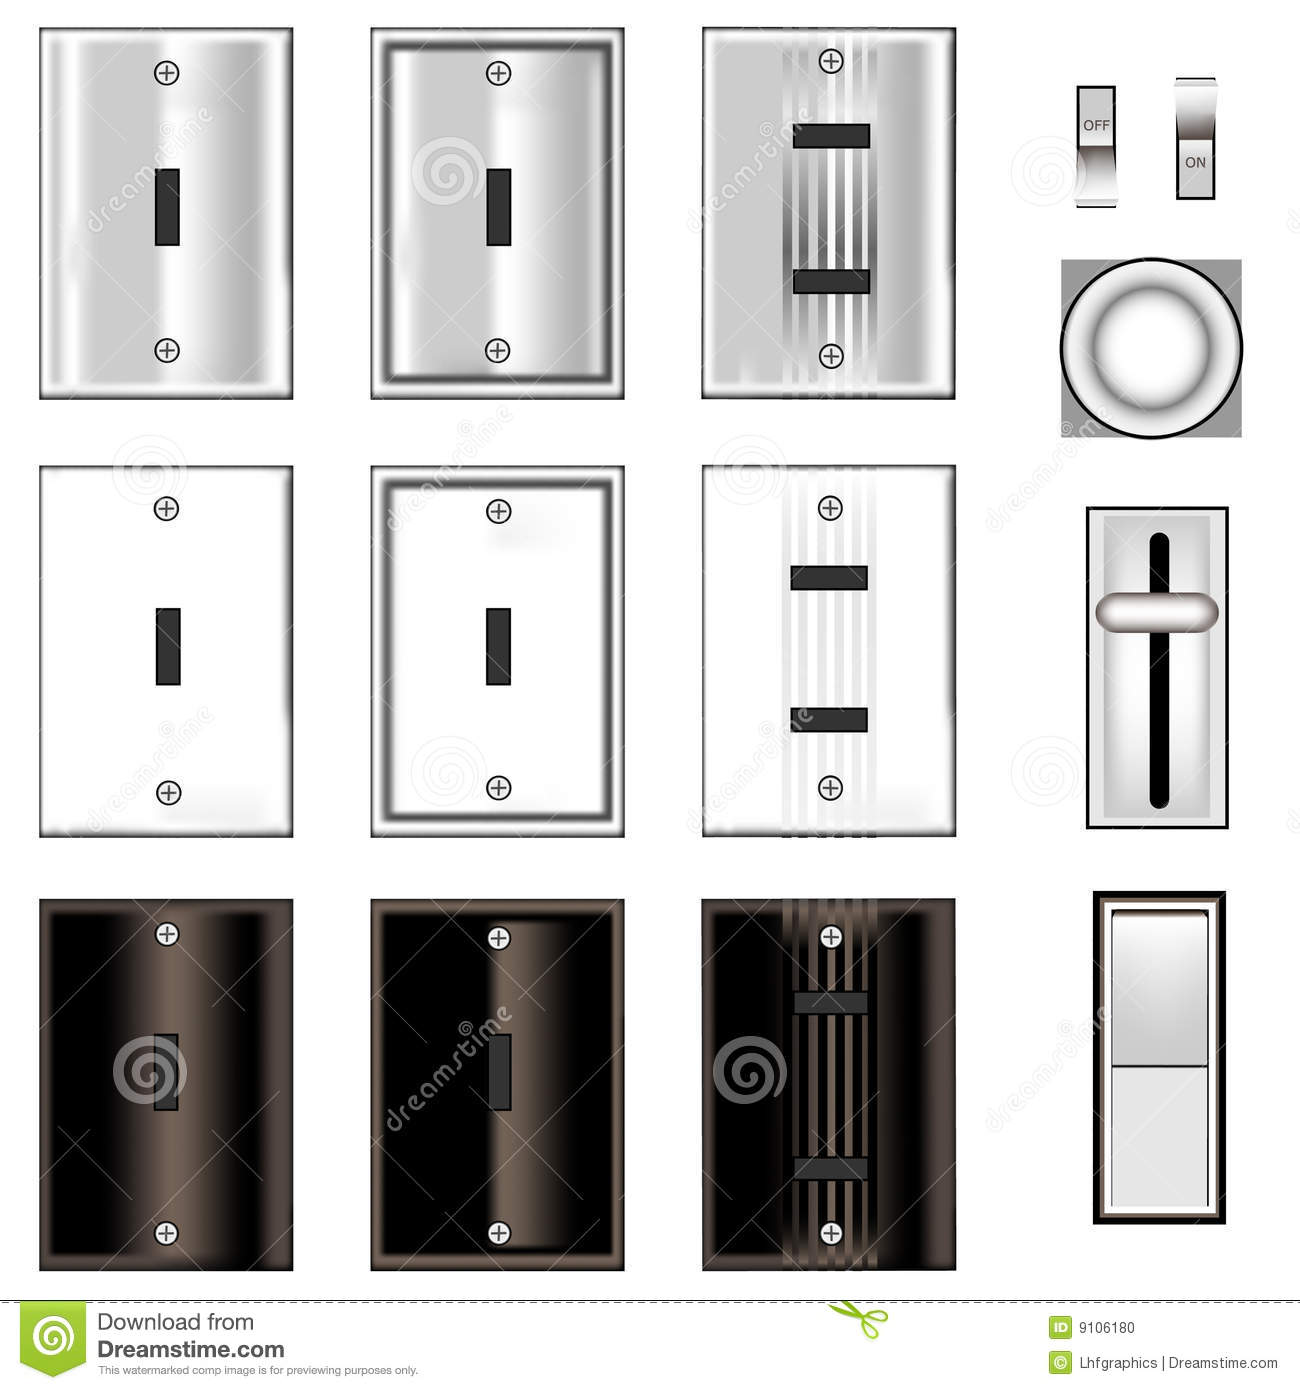 Switch Faceplate Light Switches And Faceplates Stock Vector  Image 9106180